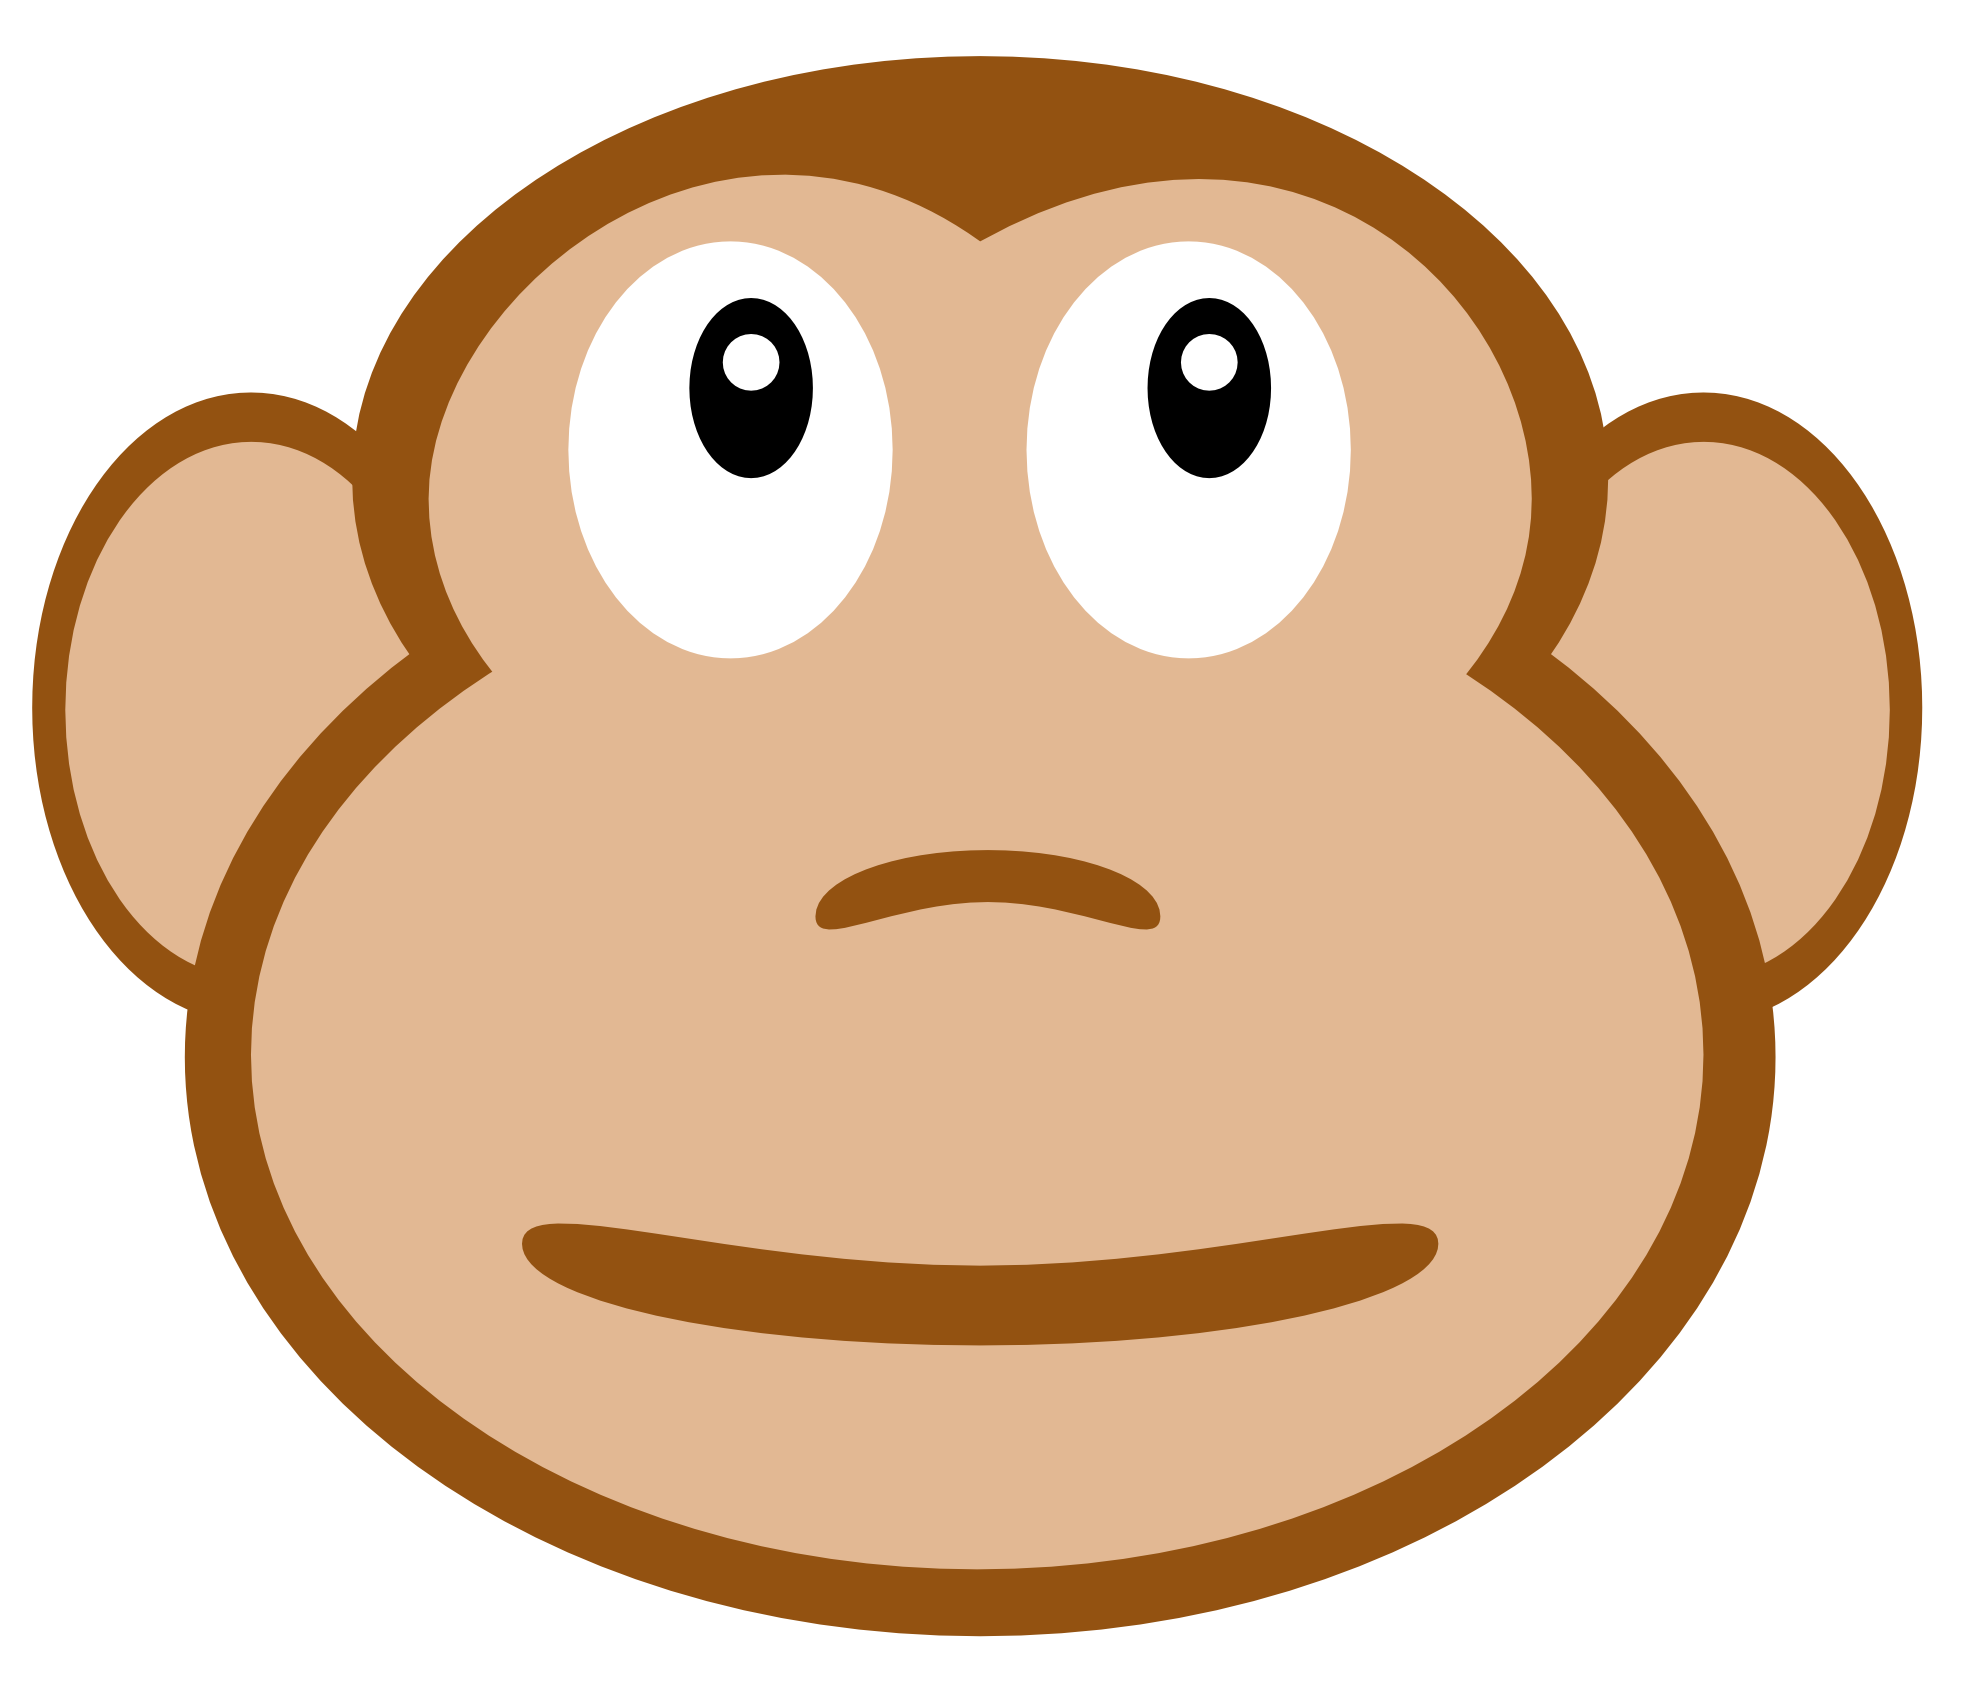 Monkey Face Drawing - Clipart library